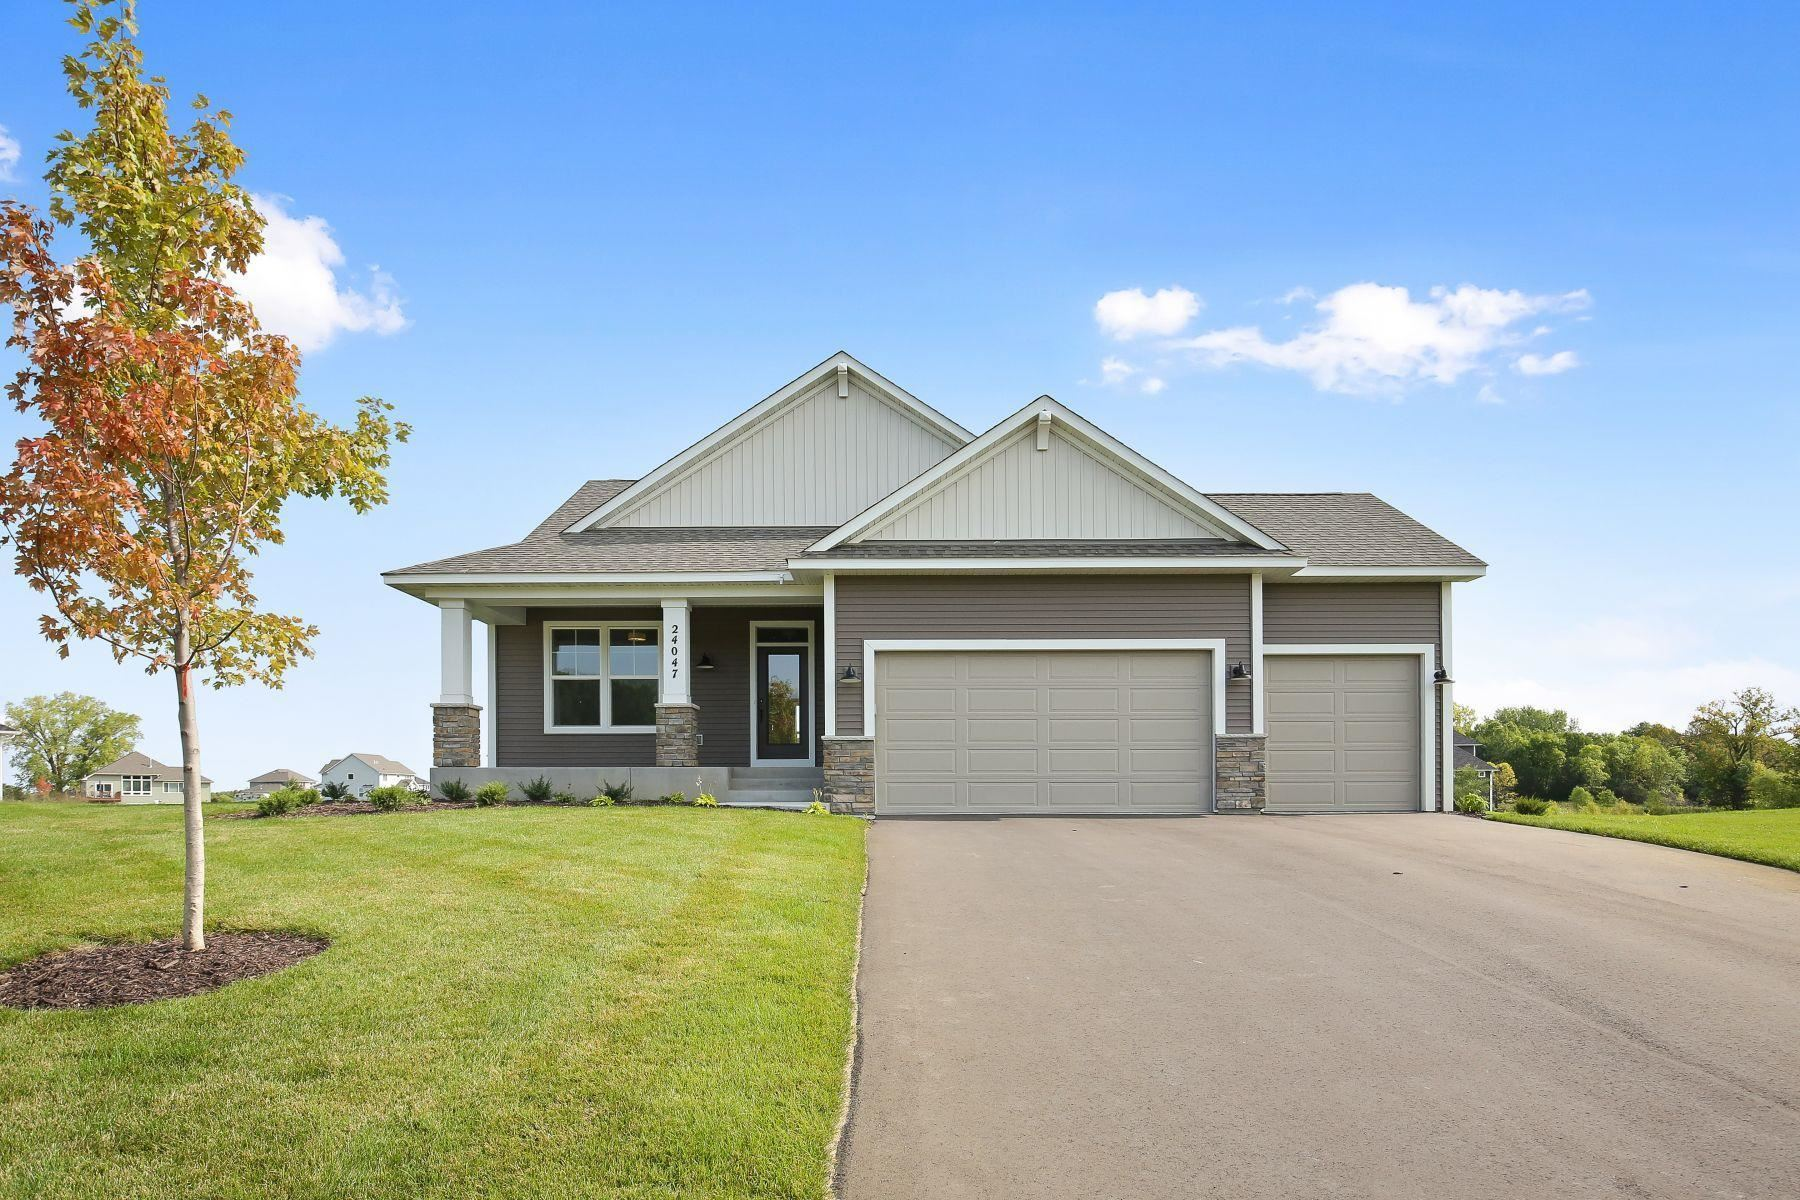 24047 Helium Ct N, Wyoming, MN 55025 - #: 5287021